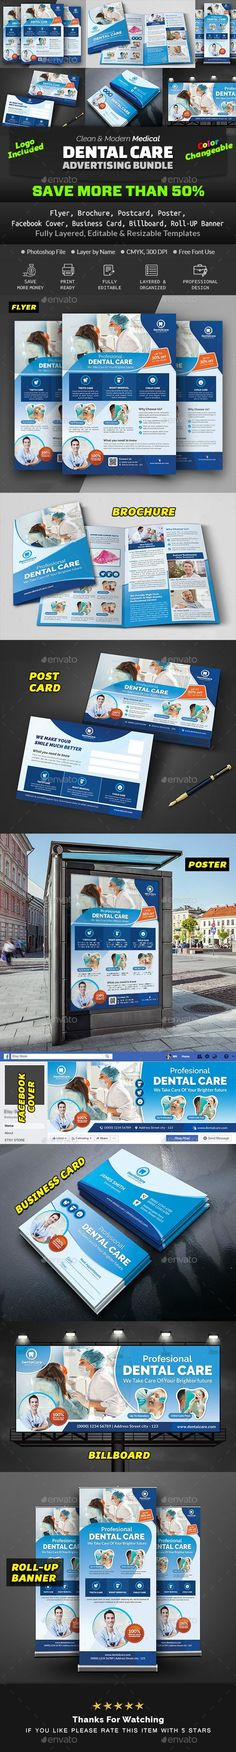 Buy Dental Advertising Bundle by Creative-Touch on GraphicRiver. This Advertising Bundle is perfectly suitable for promoting your Business. You can also use this templates in multipu. Medical Health Care, Add Image, Promote Your Business, Car Wash, Very Well, Letter Size, Make It Simple, Dental, Advertising